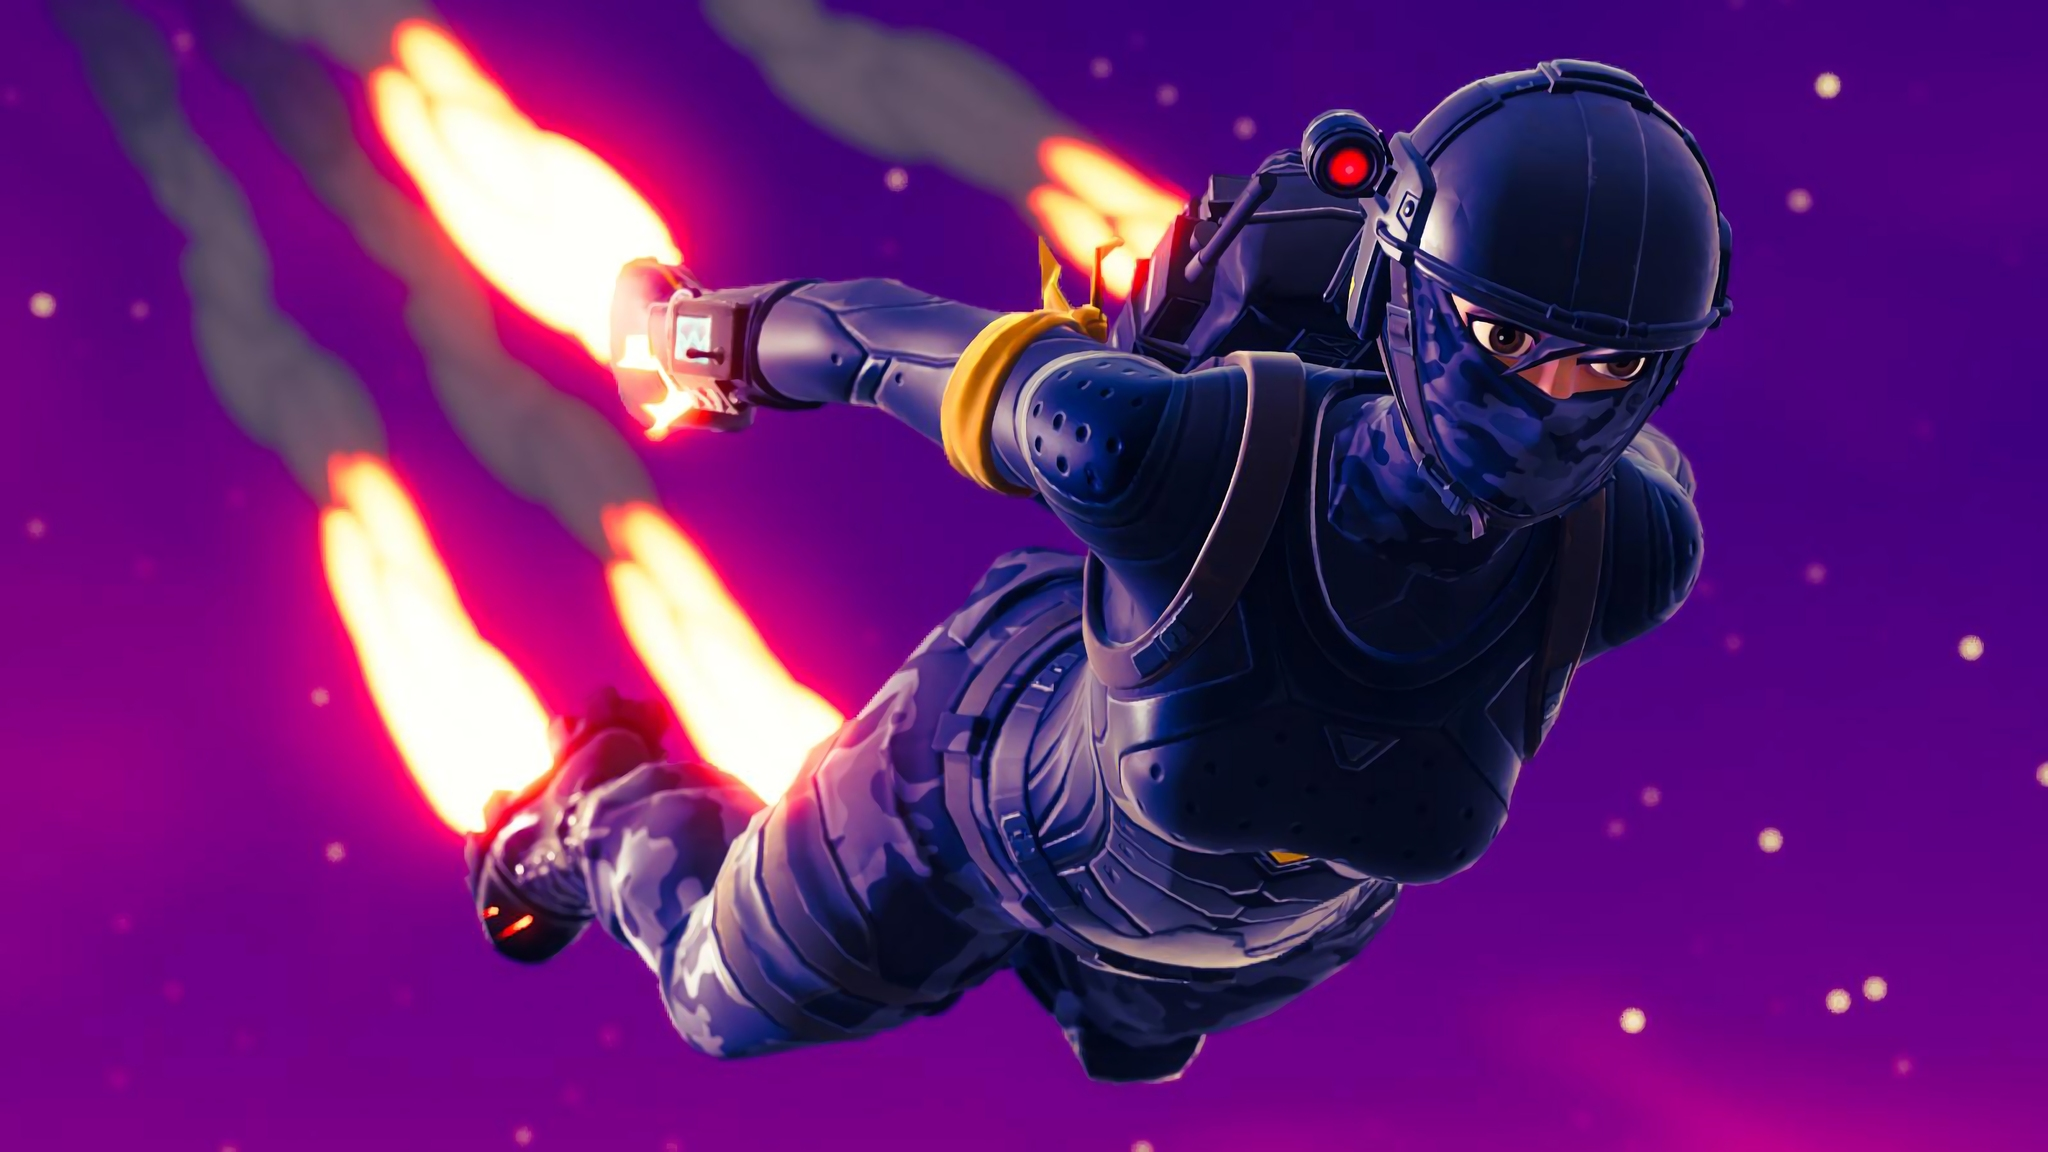 2048x1152 Elite Agent Skydive Fortnite Battle Royale 2048x1152